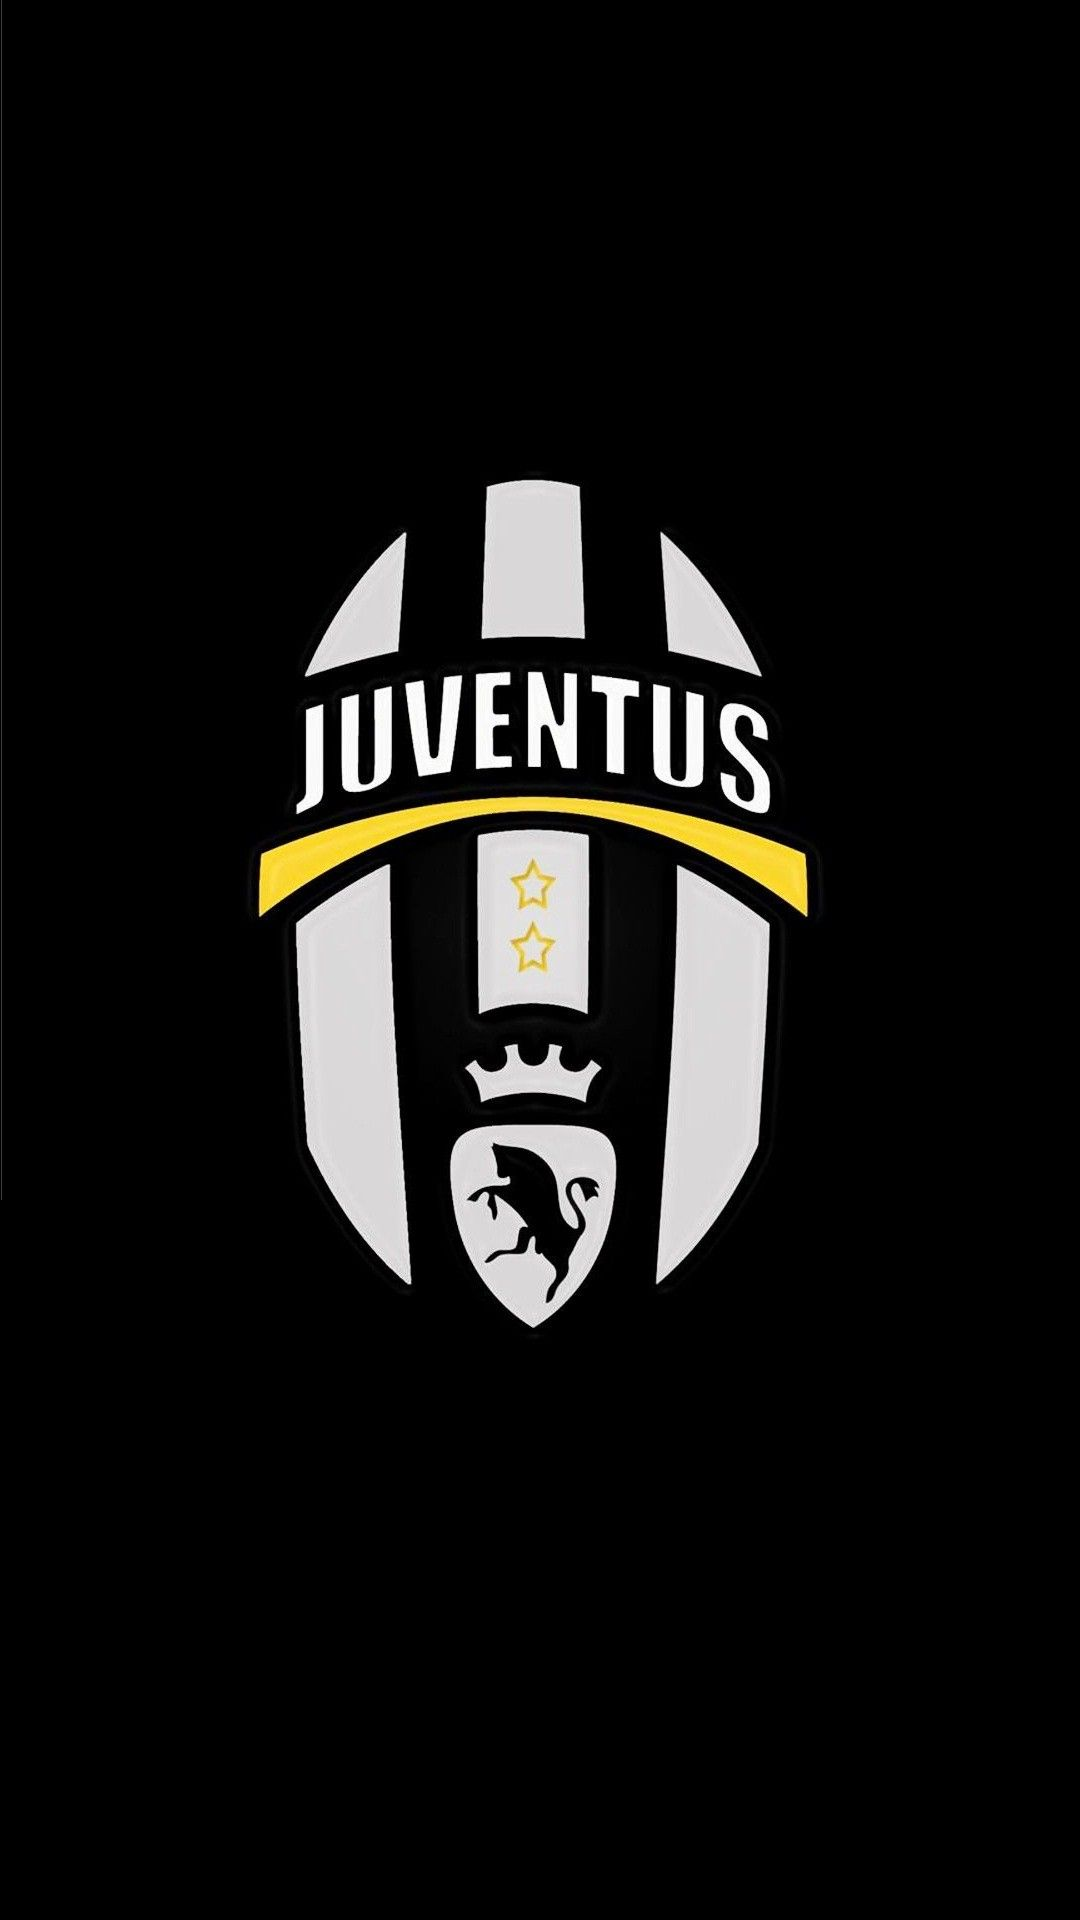 Juventus Iphone X Wallpaper Best Iphone Wallpaper Juventus Juventus Wallpapers Juventus Logo